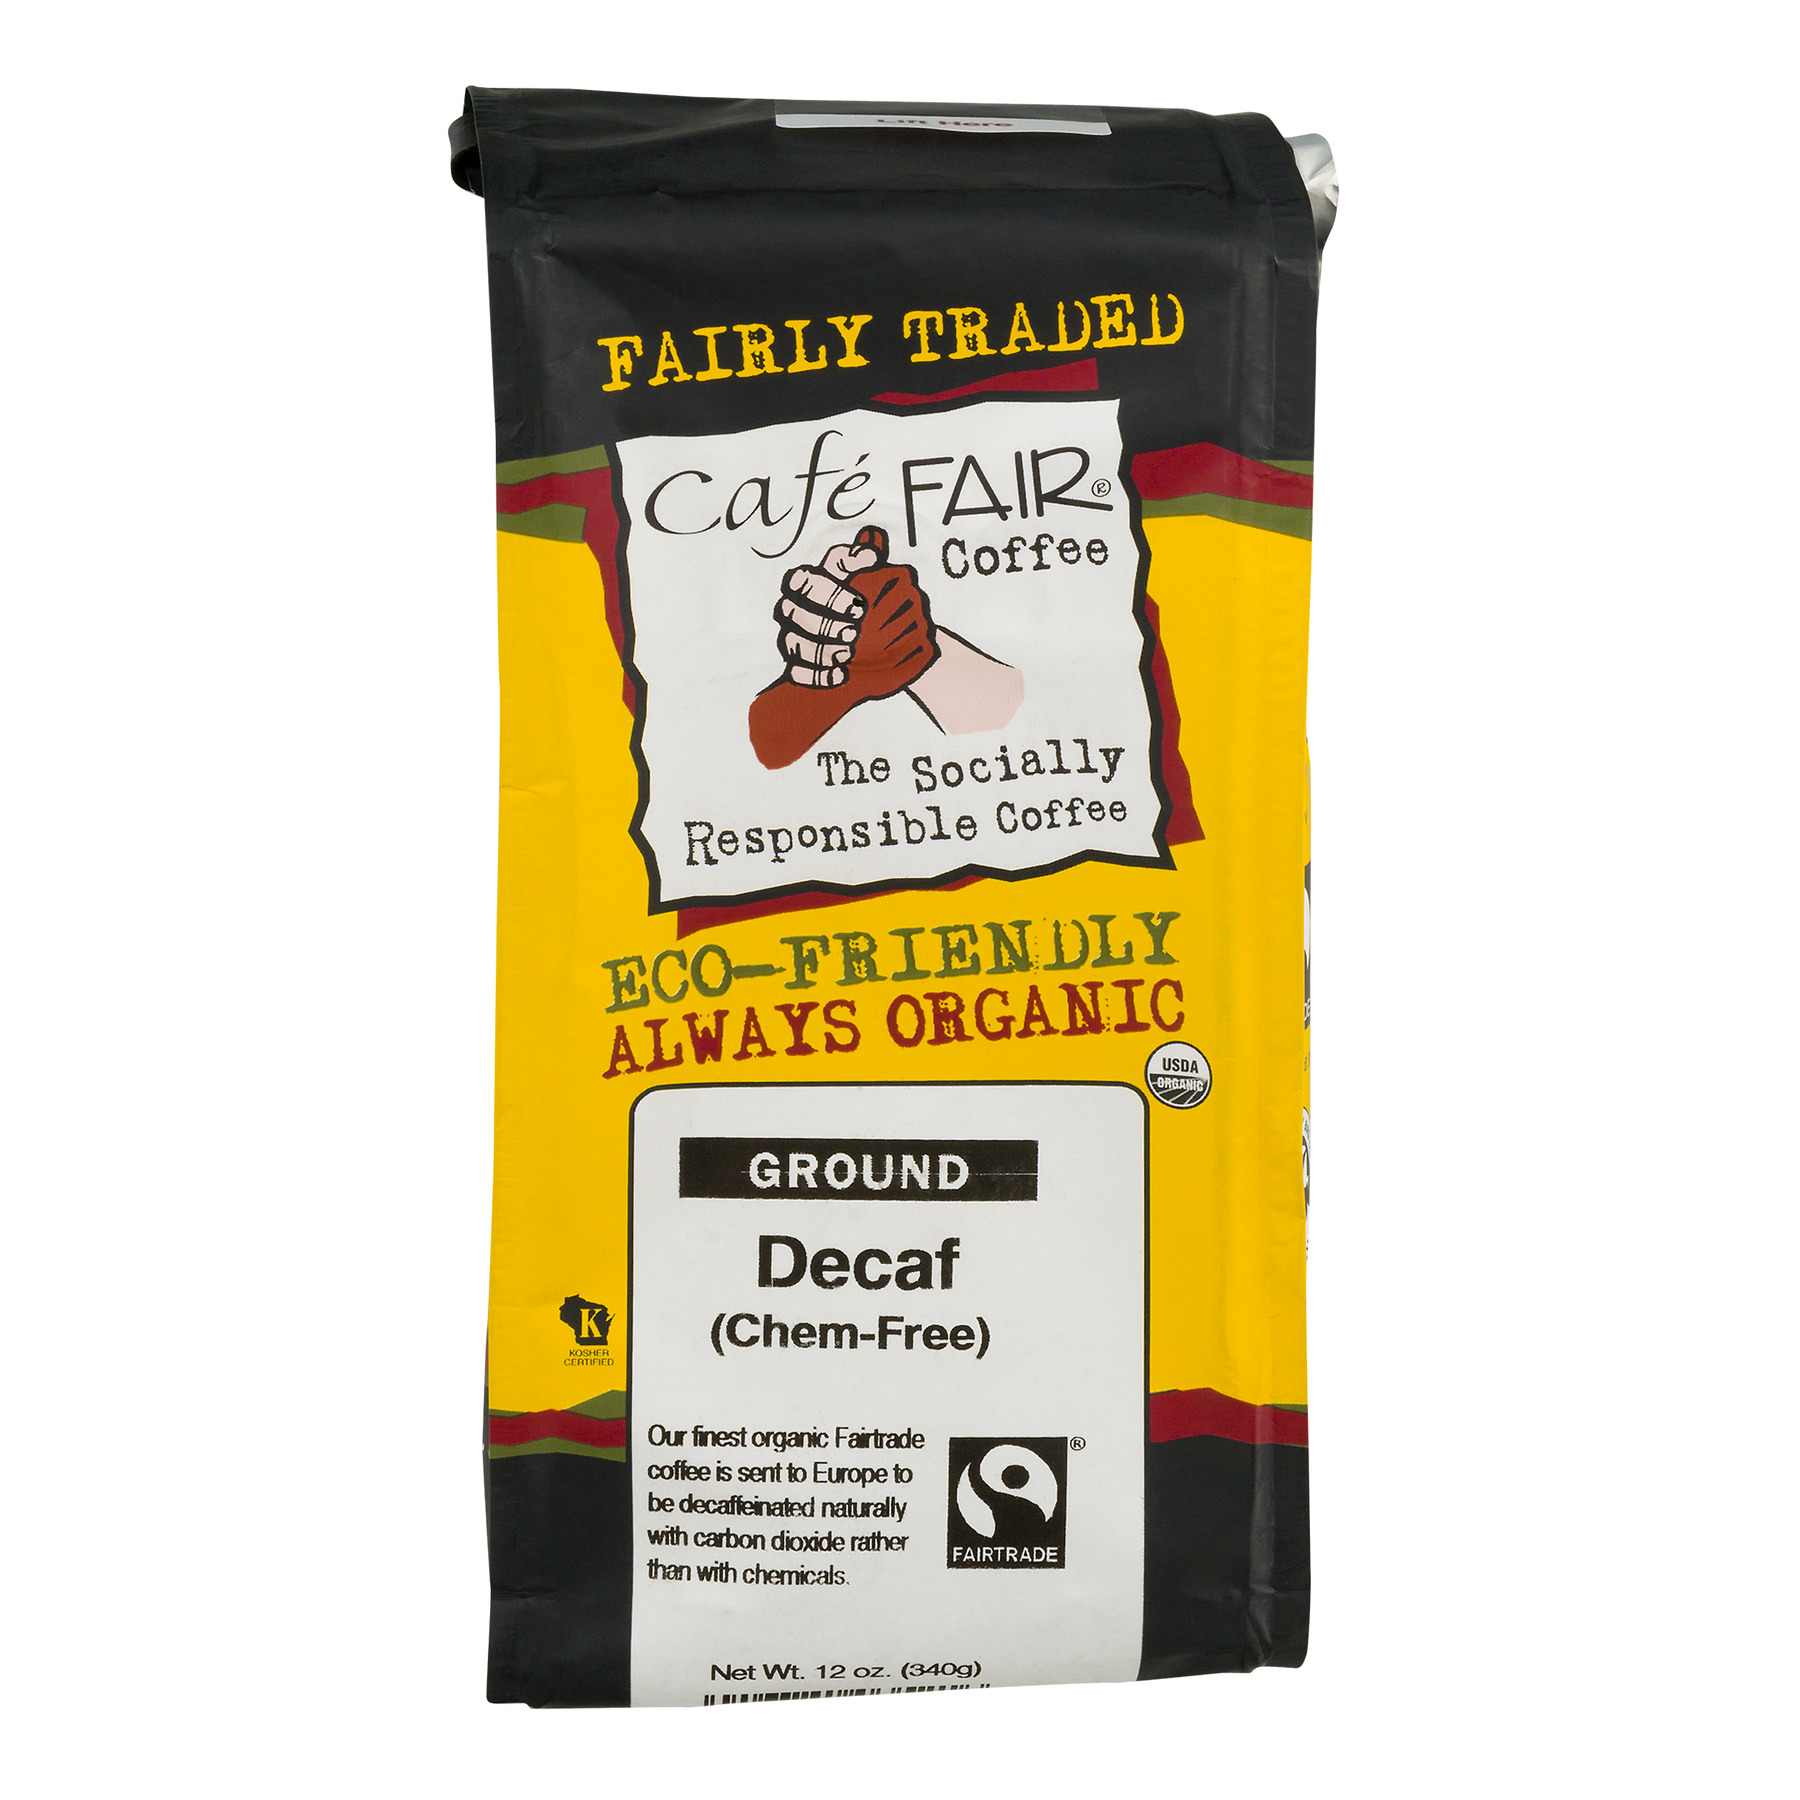 Cafe' Fair Ground Decaf Coffee, 12.0 OZ